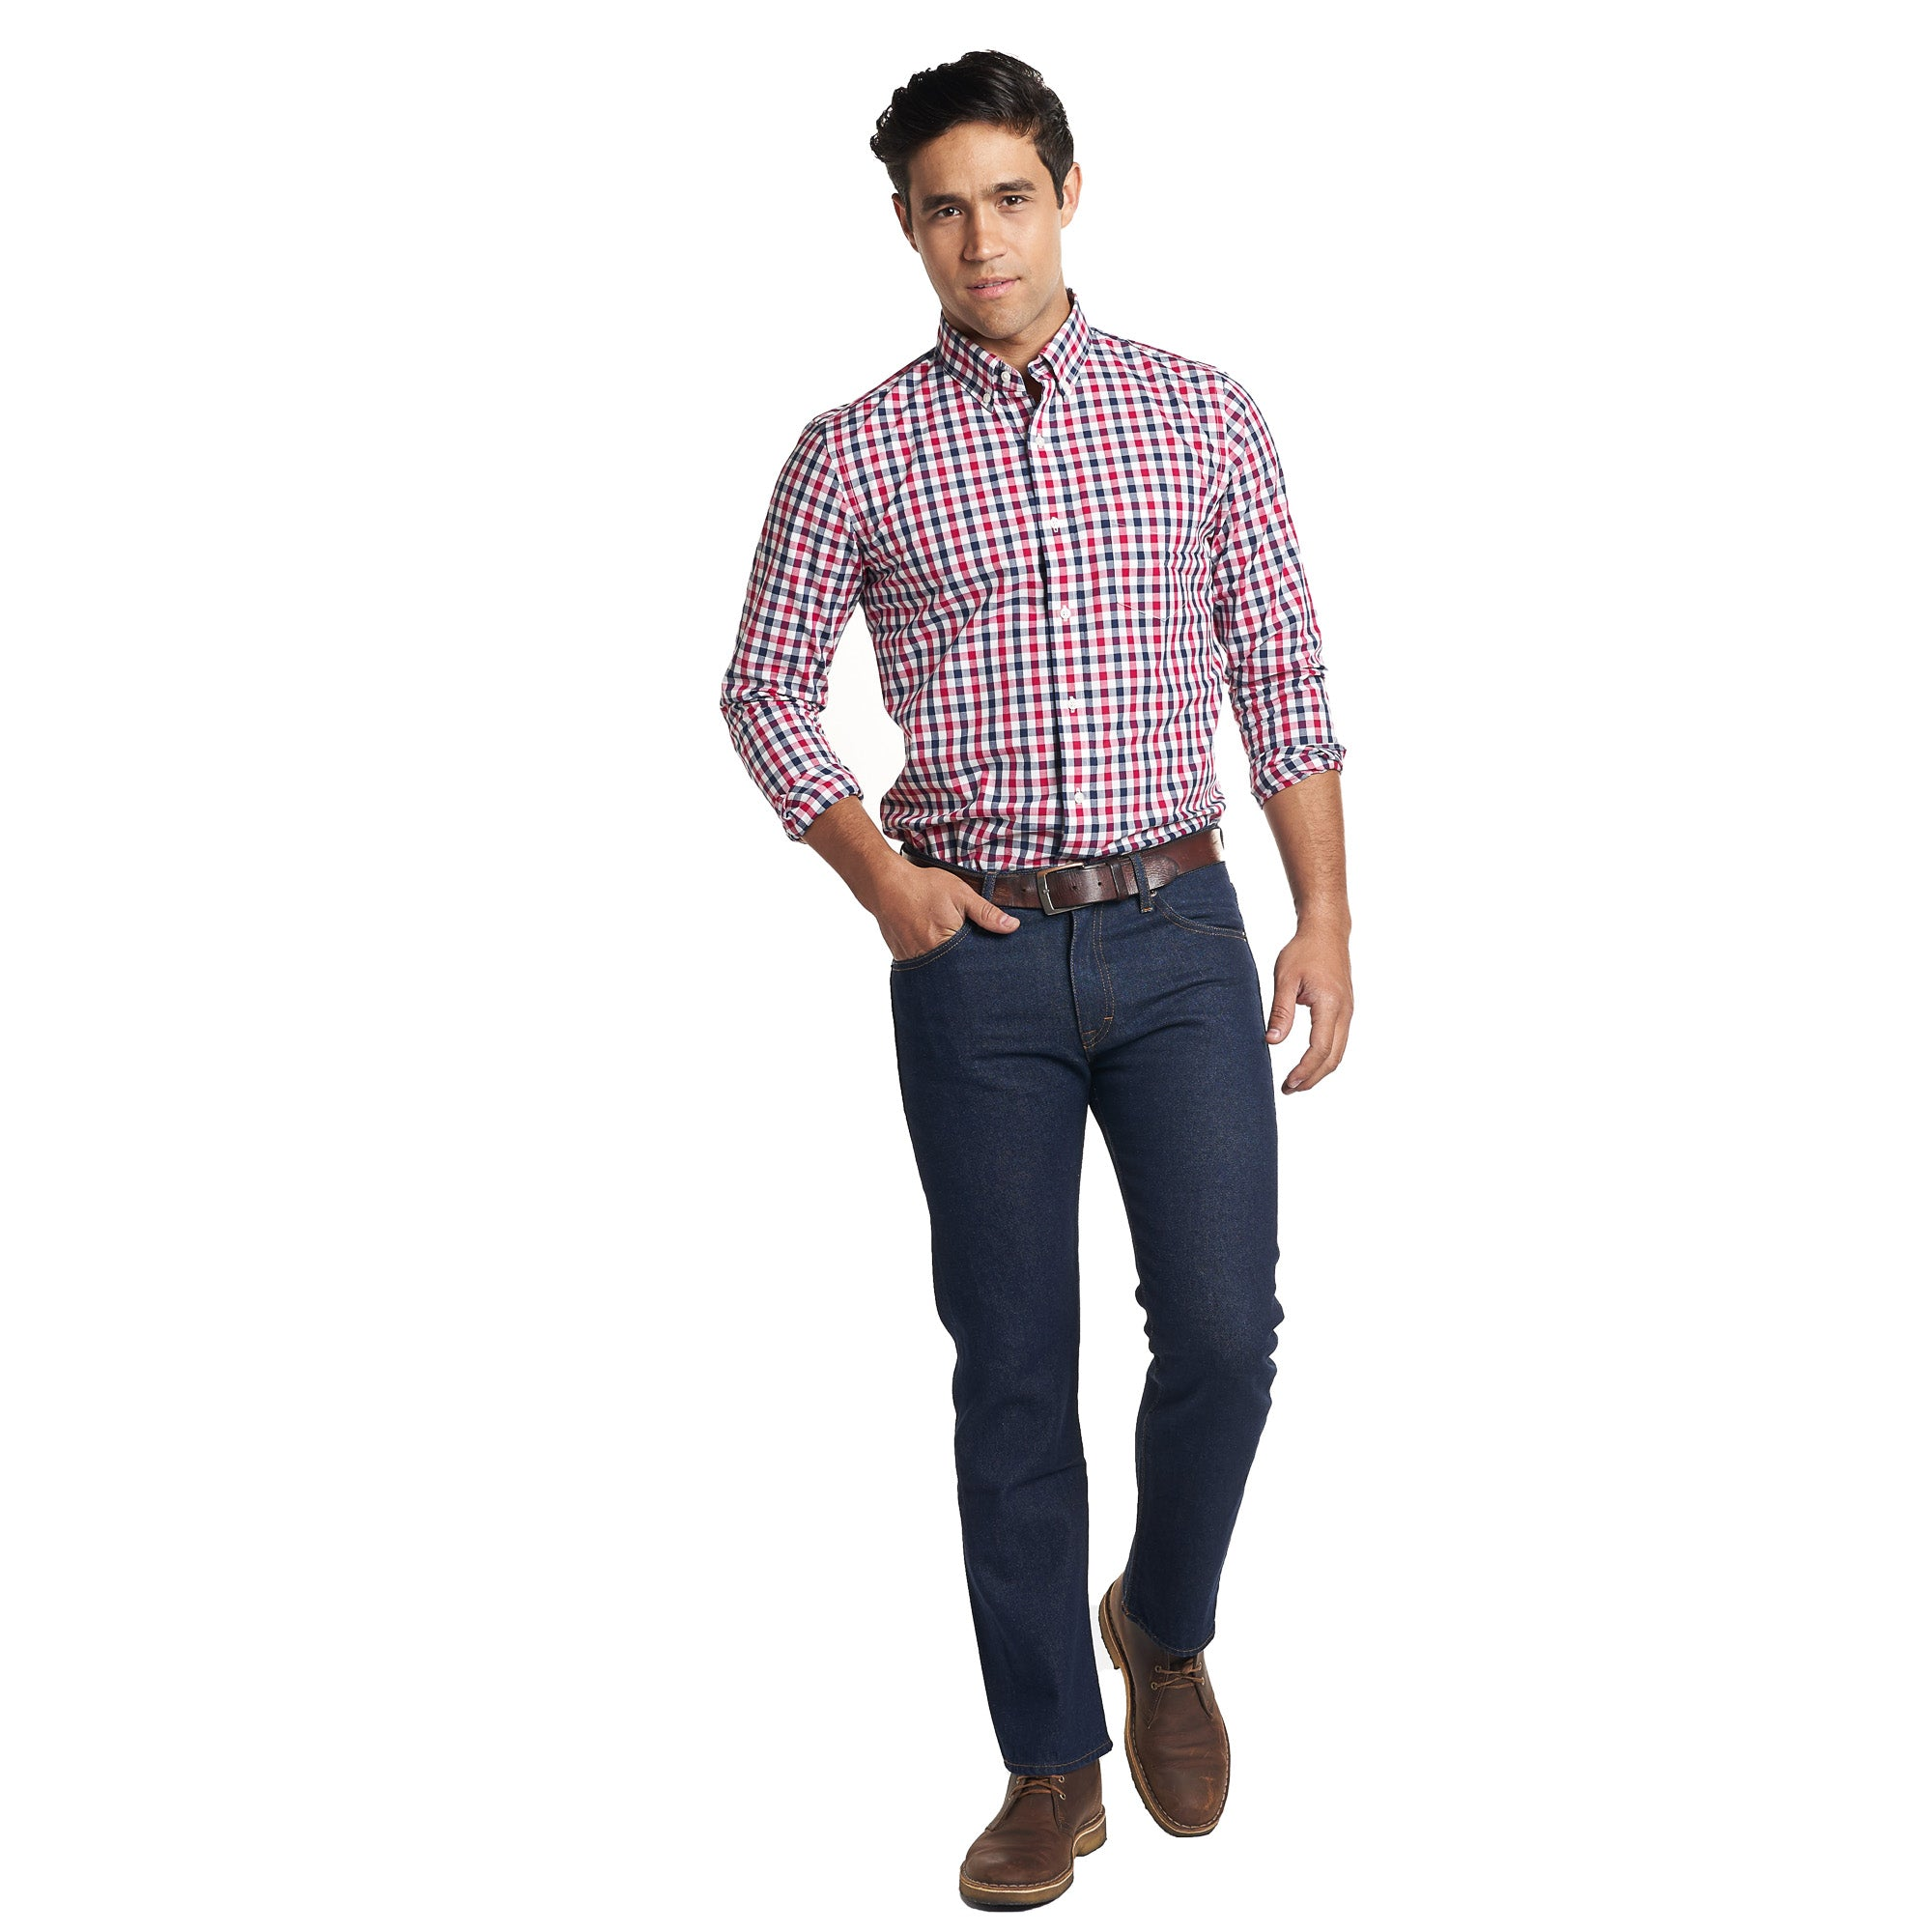 Everyday Shirt - Navy Red Gingham